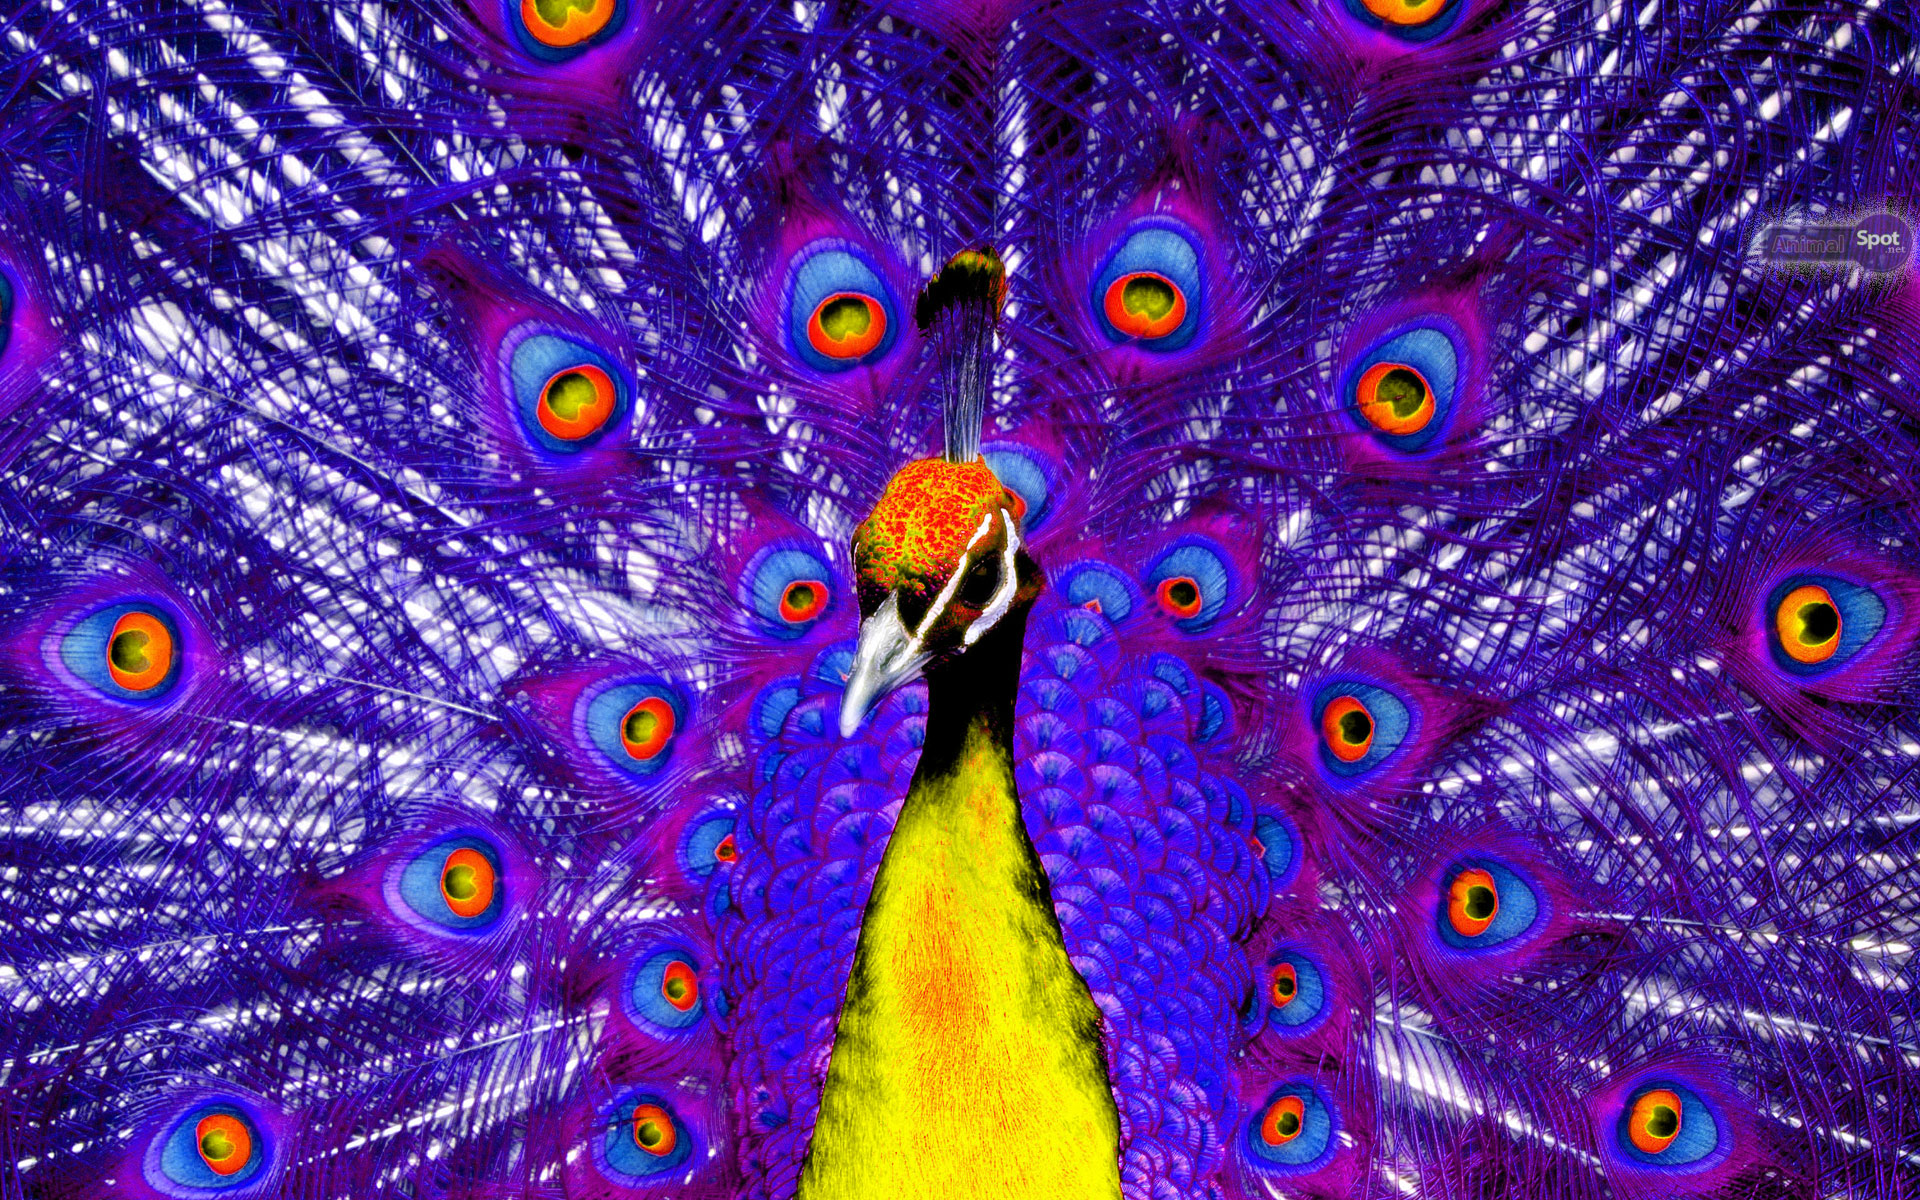 Best Peacock Wallpapers And Backgrounds